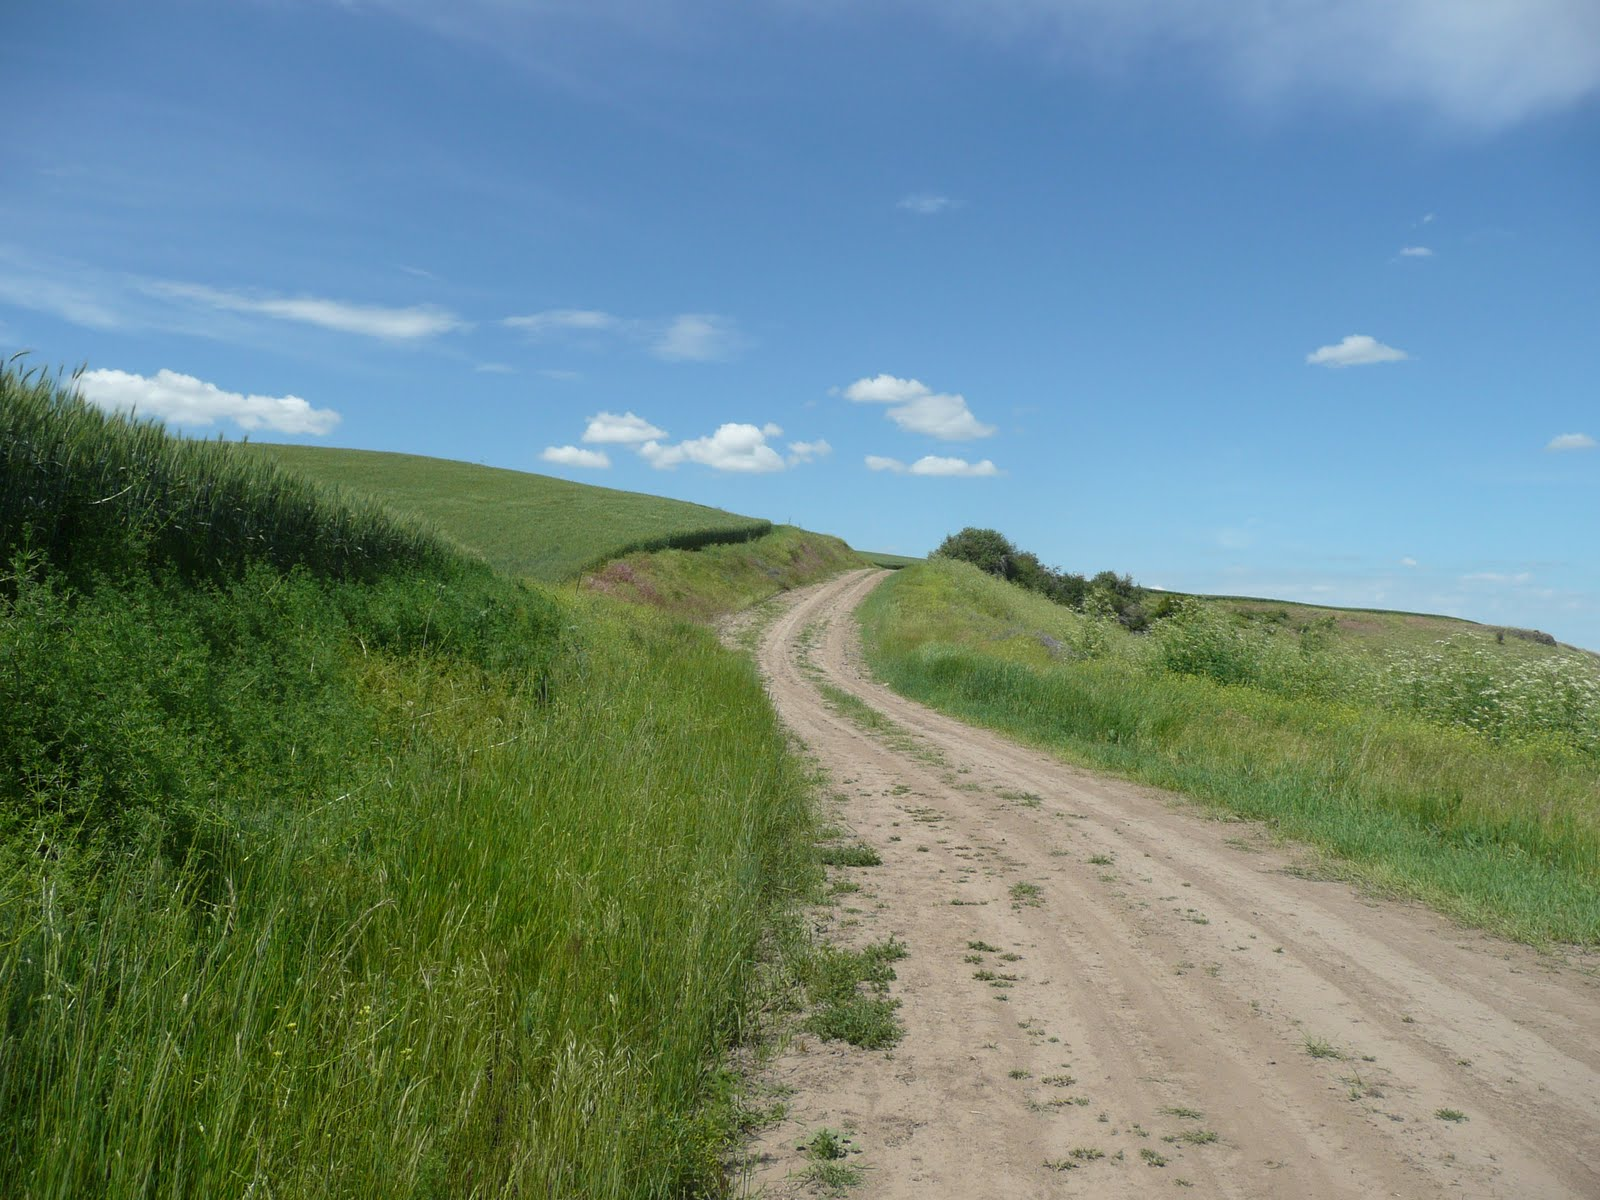 Catherine Ensley ...: The Long and Winding Road